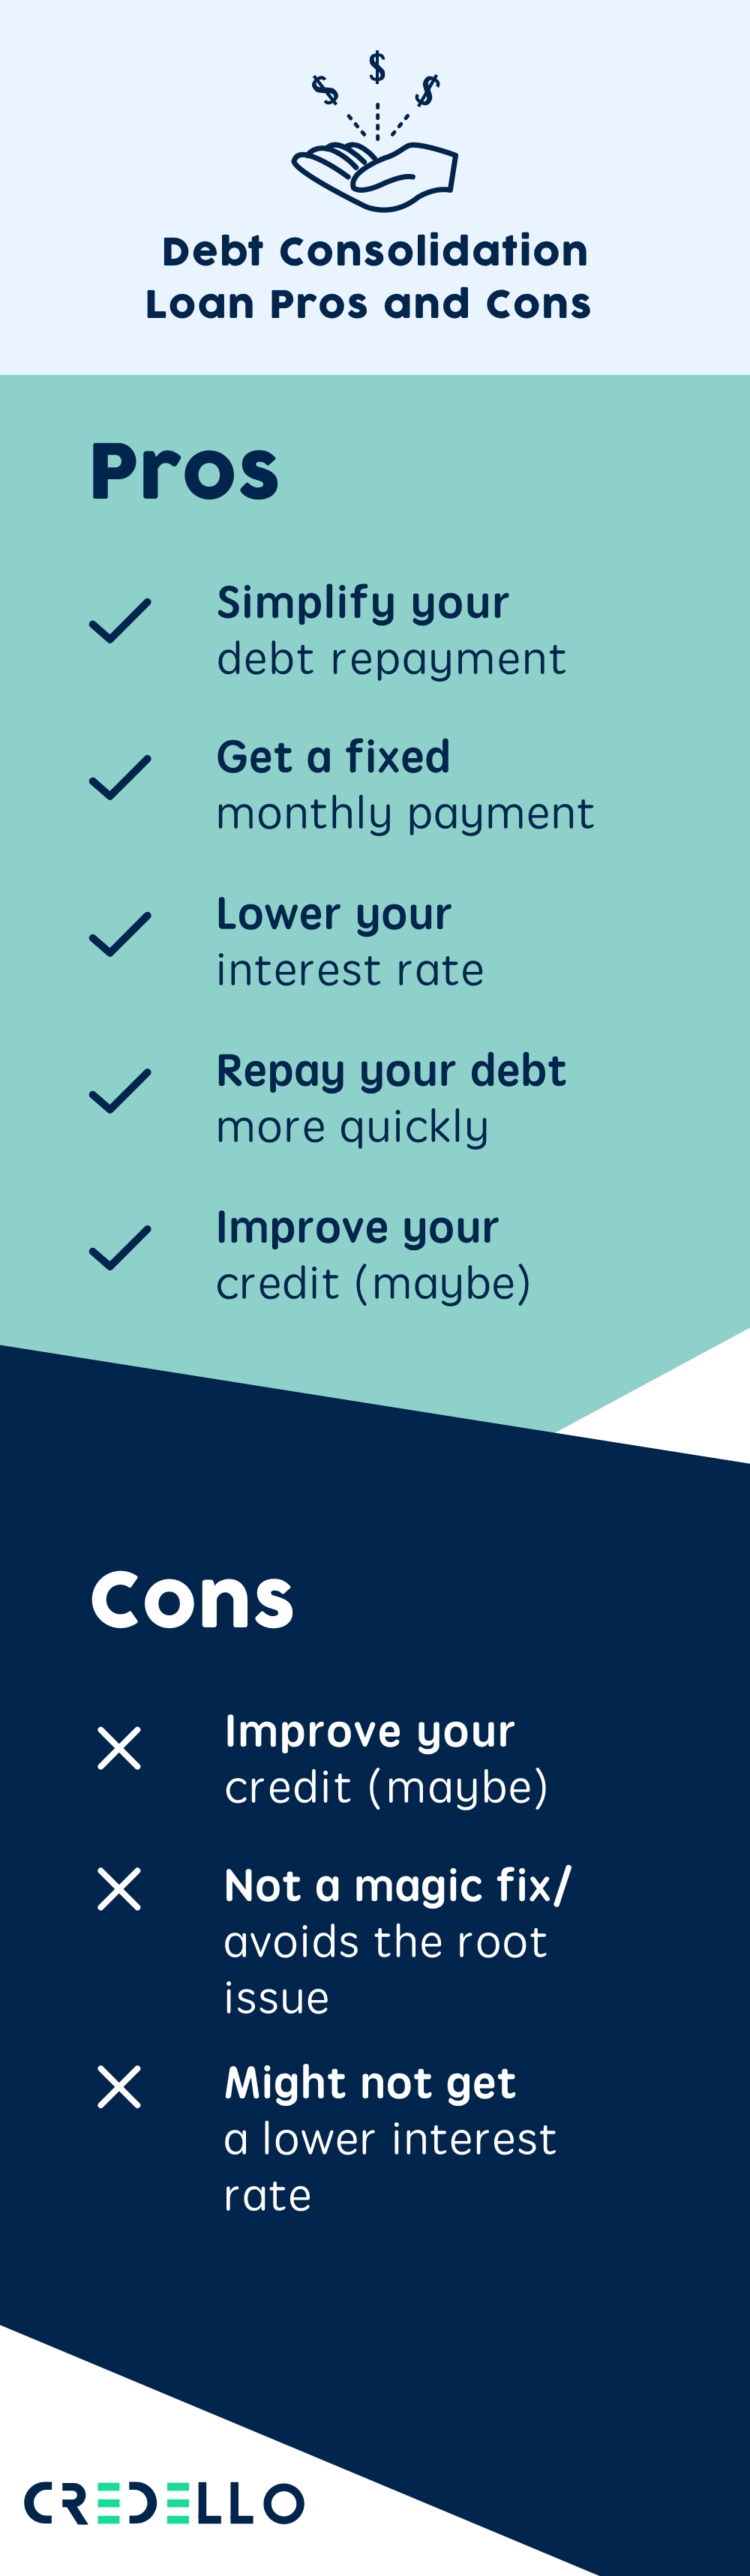 Debt Consolidation Loan Pros and Cons